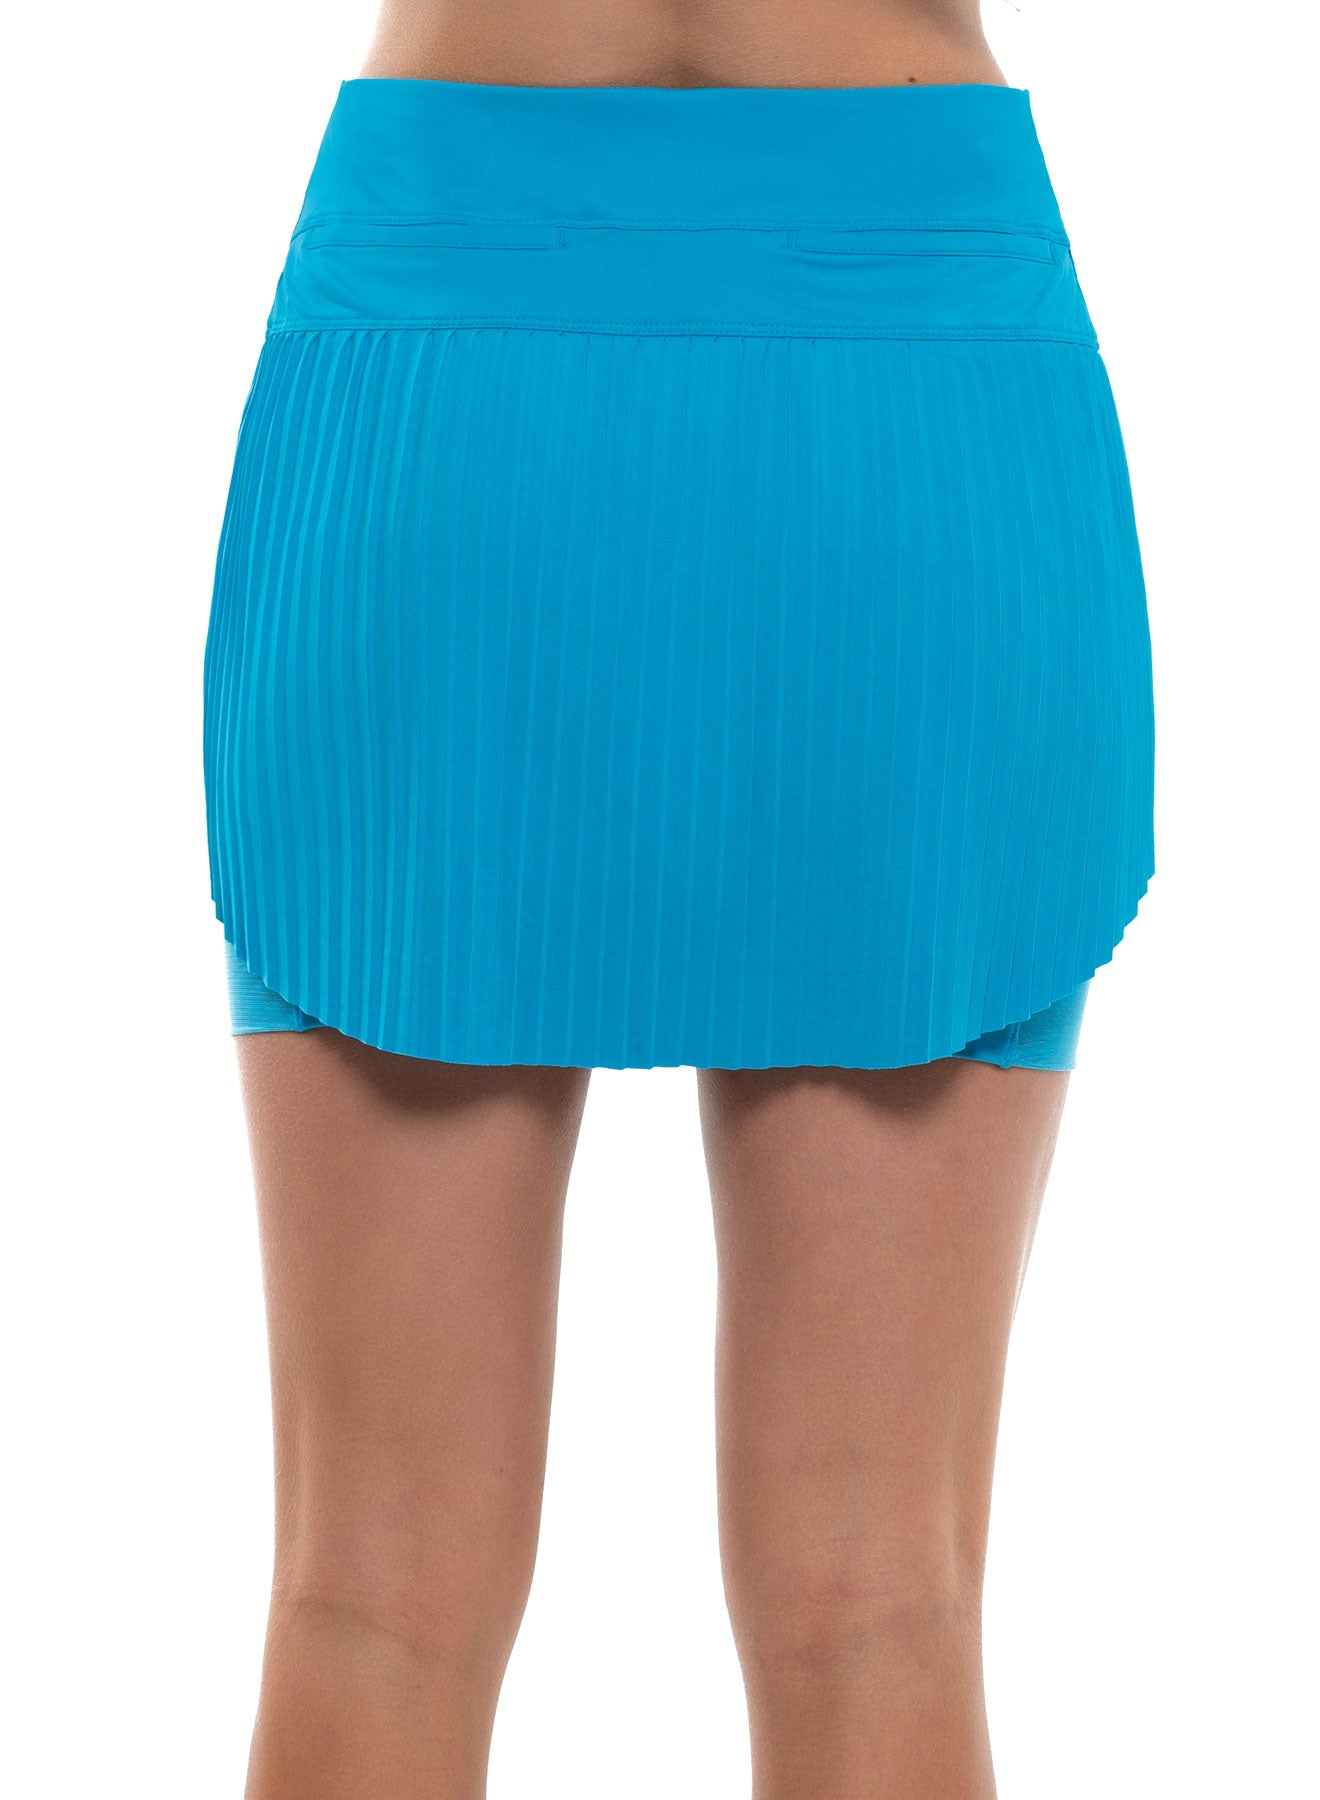 LUCKY IN LOVE Hi-Brid Pleated Short Skort Turquoise 6-409